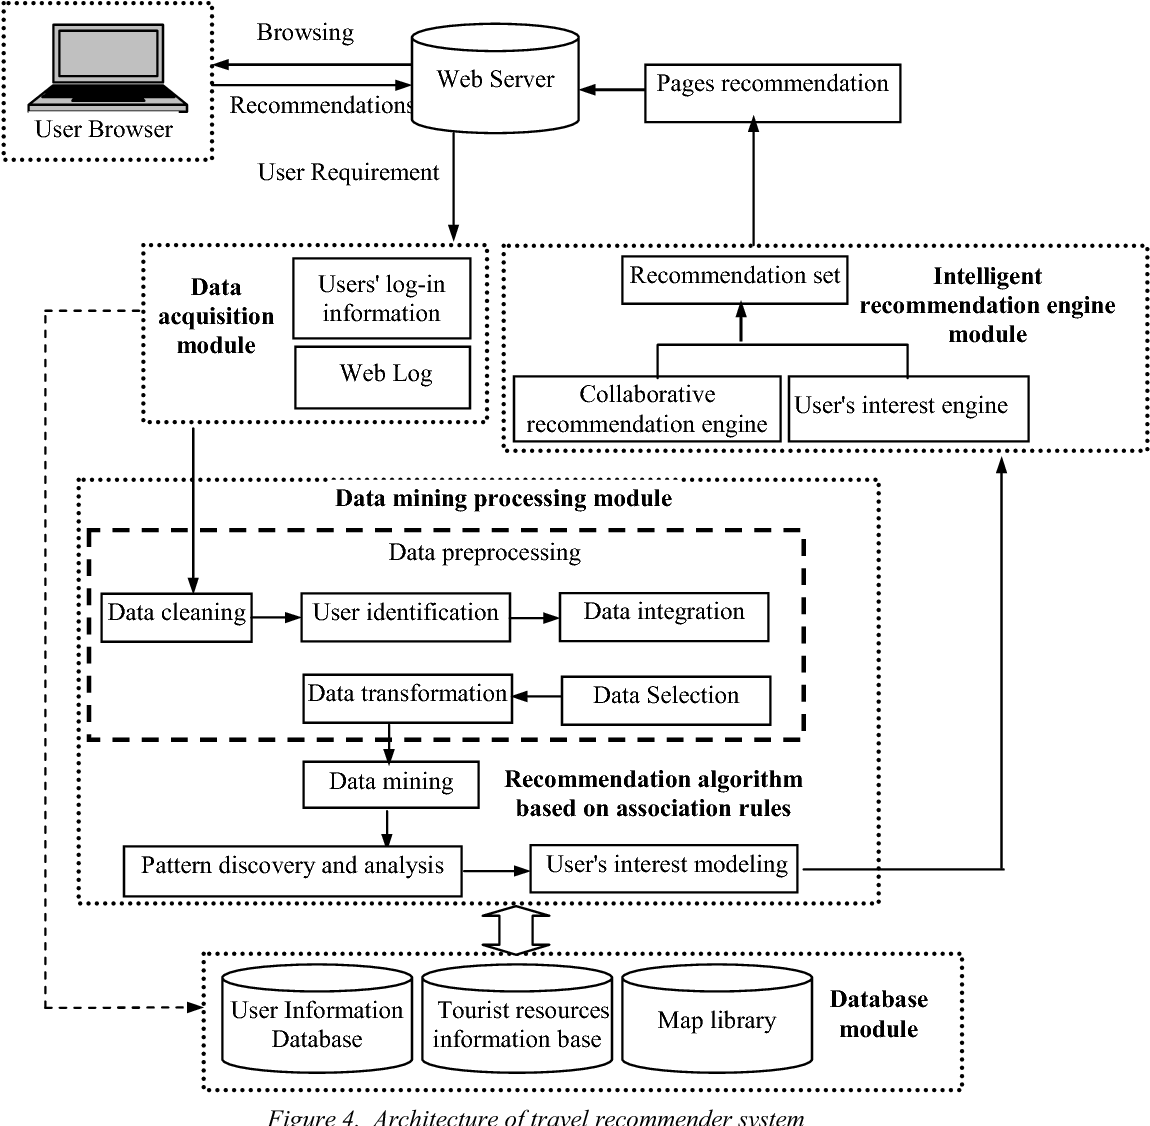 Design and Development of the Travel Recommendation System